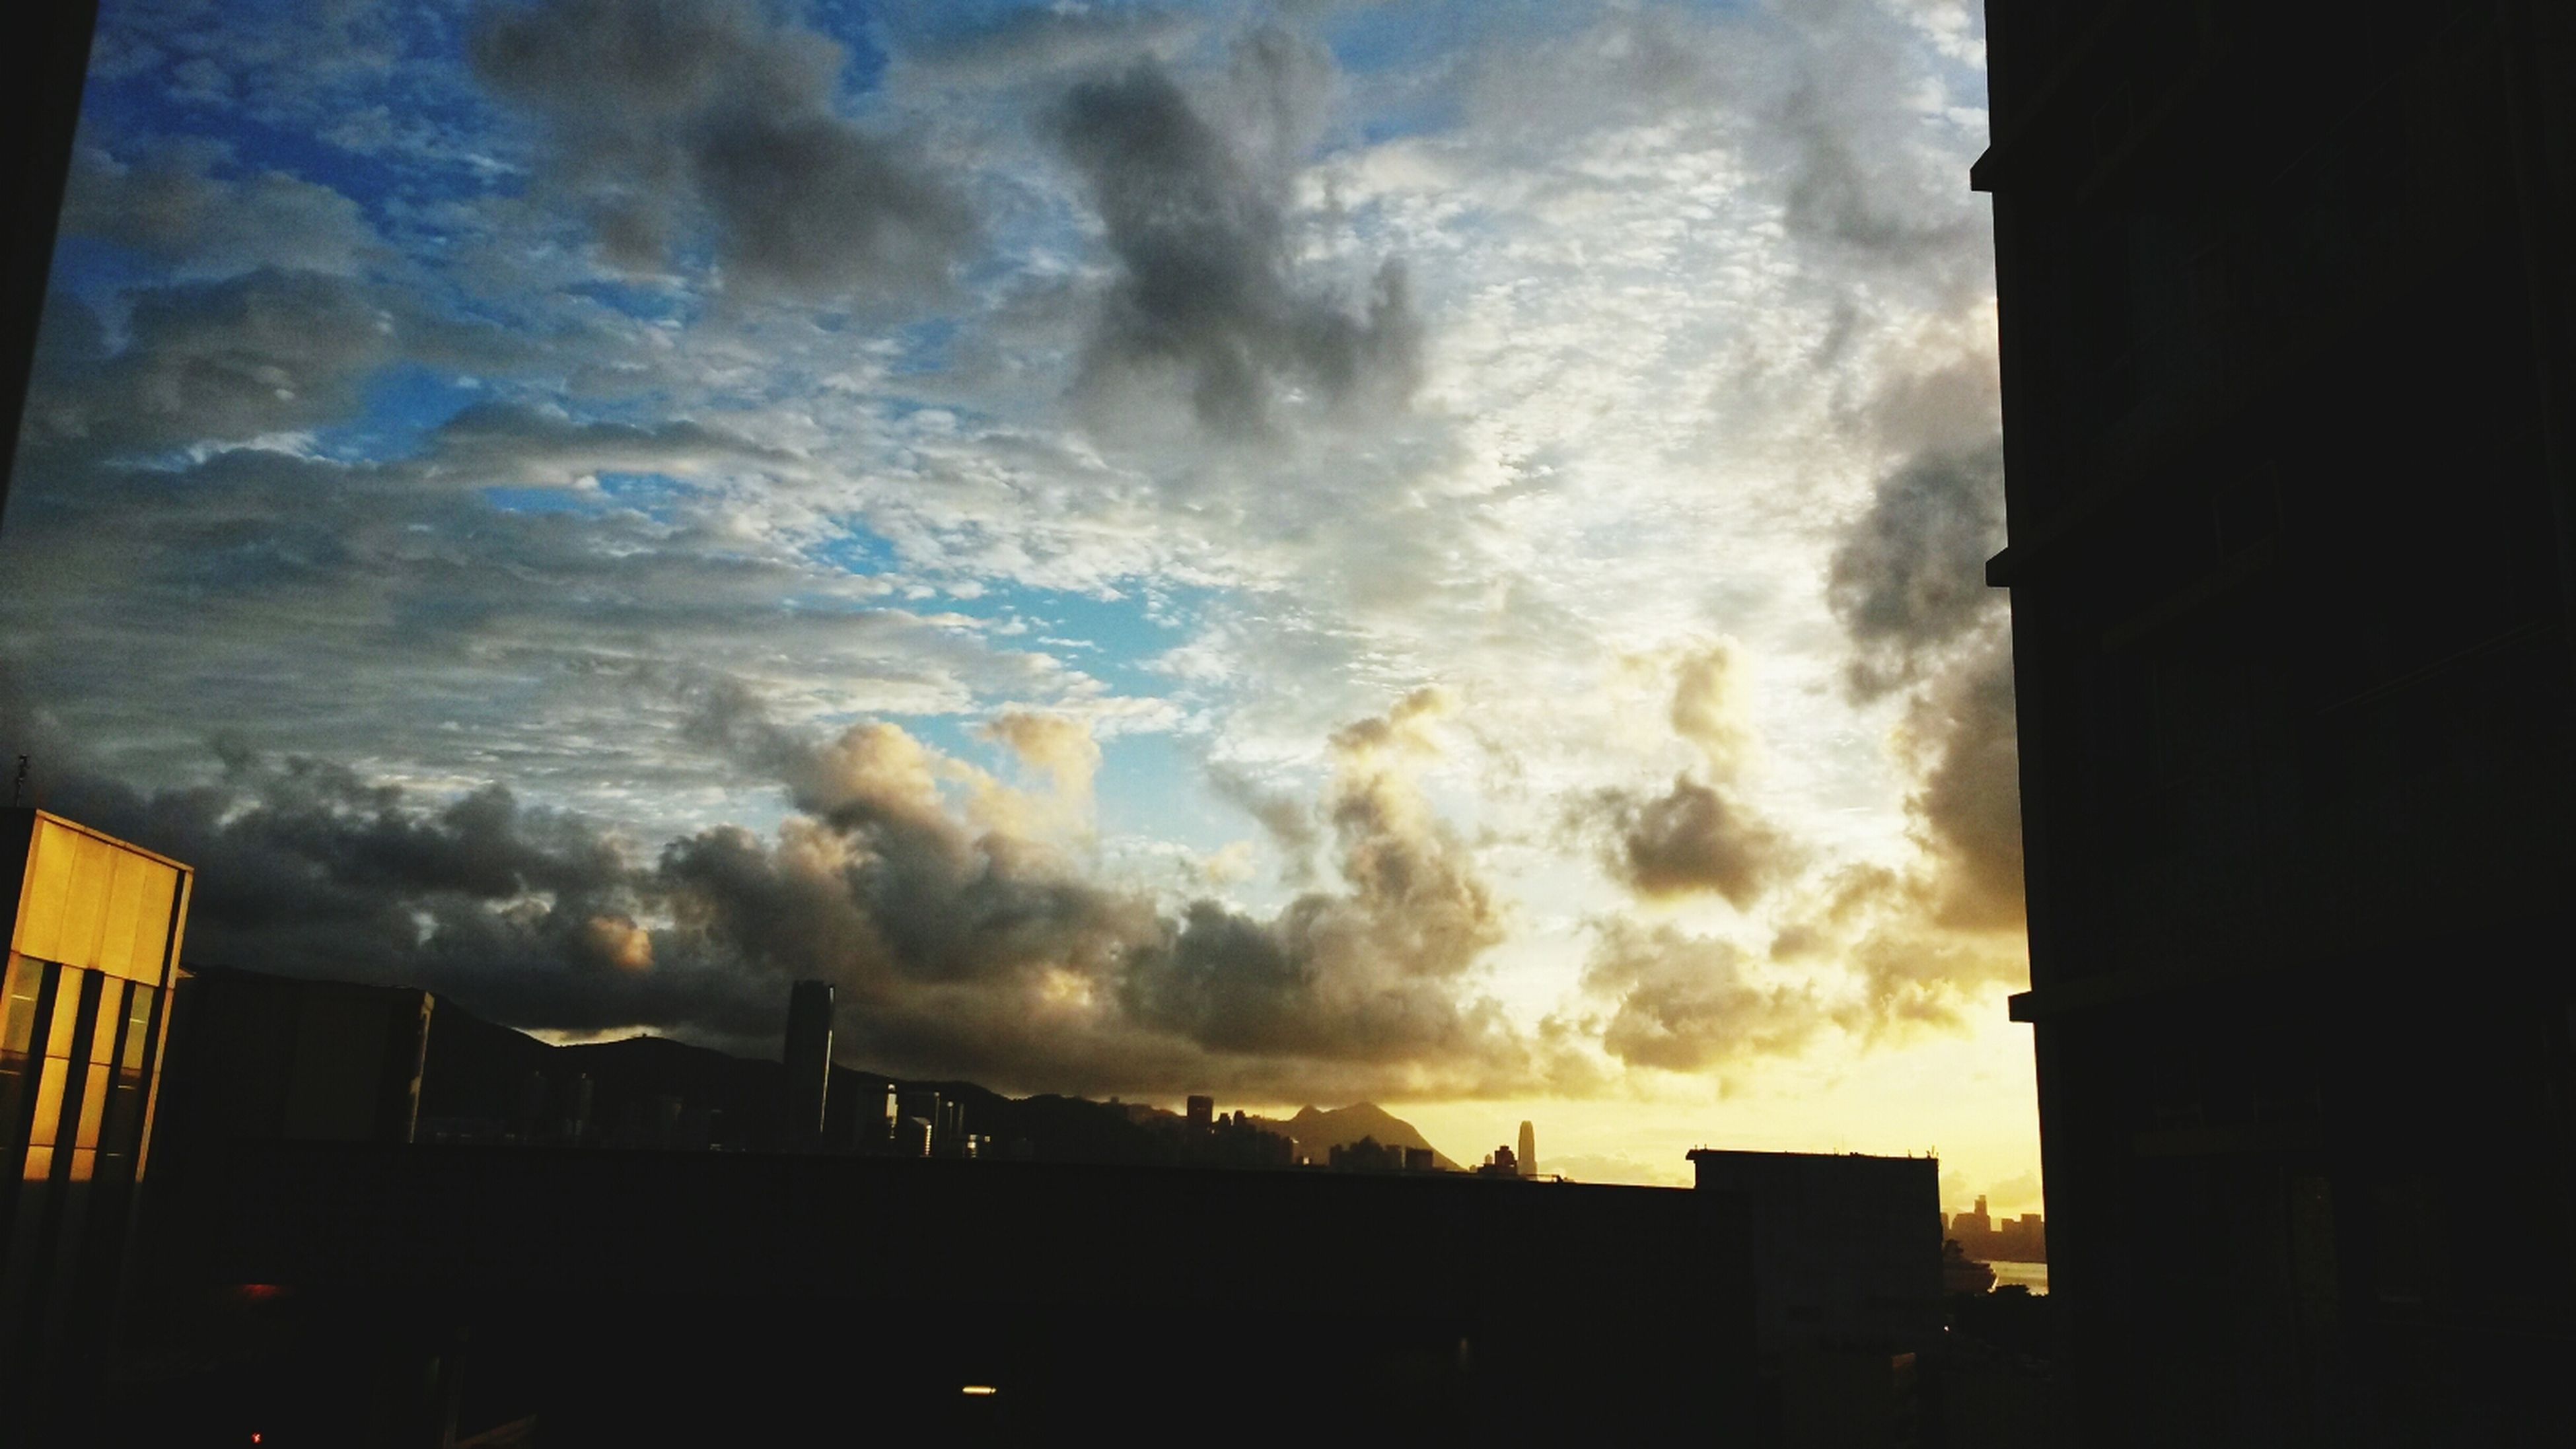 building exterior, architecture, sky, built structure, cloud - sky, cloudy, sunset, silhouette, weather, storm cloud, low angle view, city, cloud, building, overcast, dramatic sky, dusk, residential building, atmospheric mood, residential structure